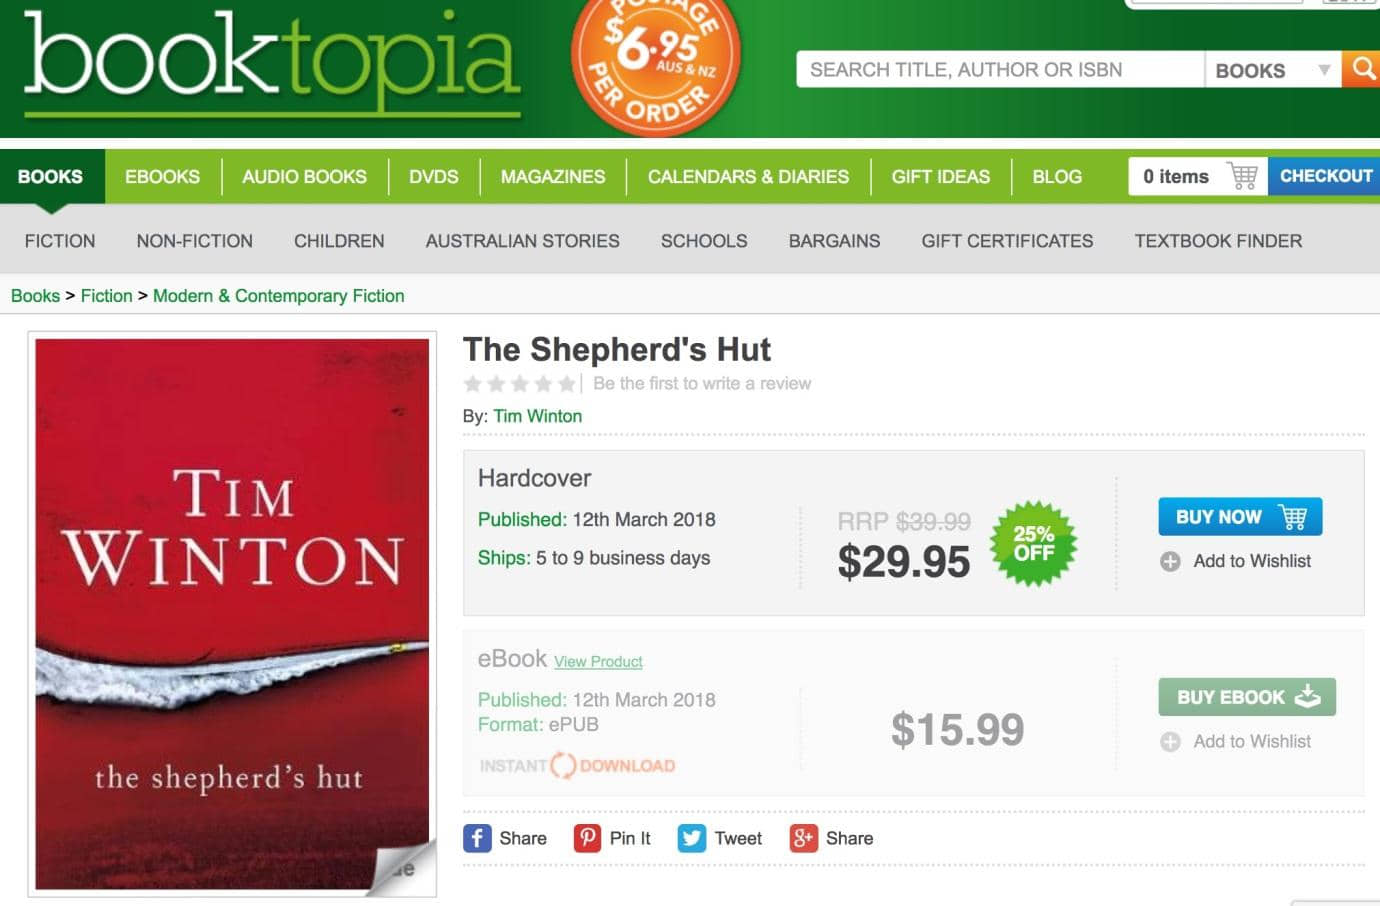 Booktopia shopping cart saved as wishlist to buy later.